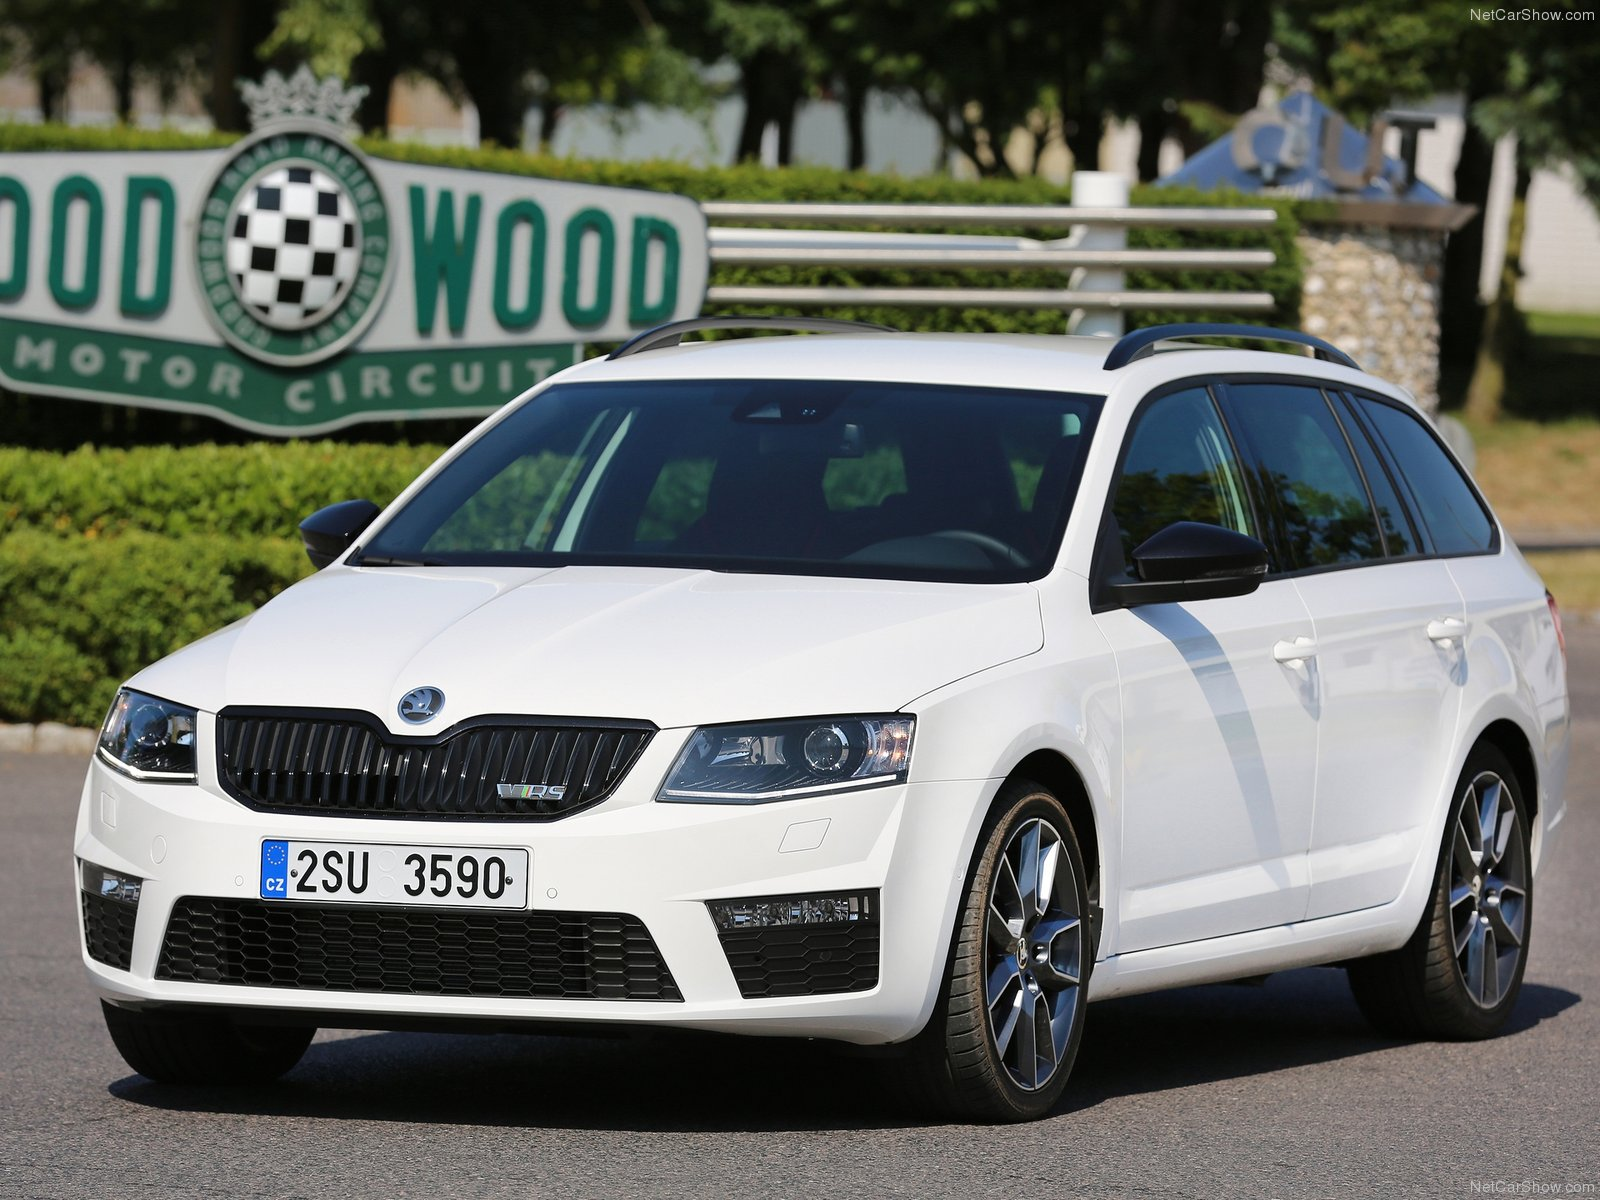 skoda octavia rs combi picture 115615 skoda photo gallery. Black Bedroom Furniture Sets. Home Design Ideas